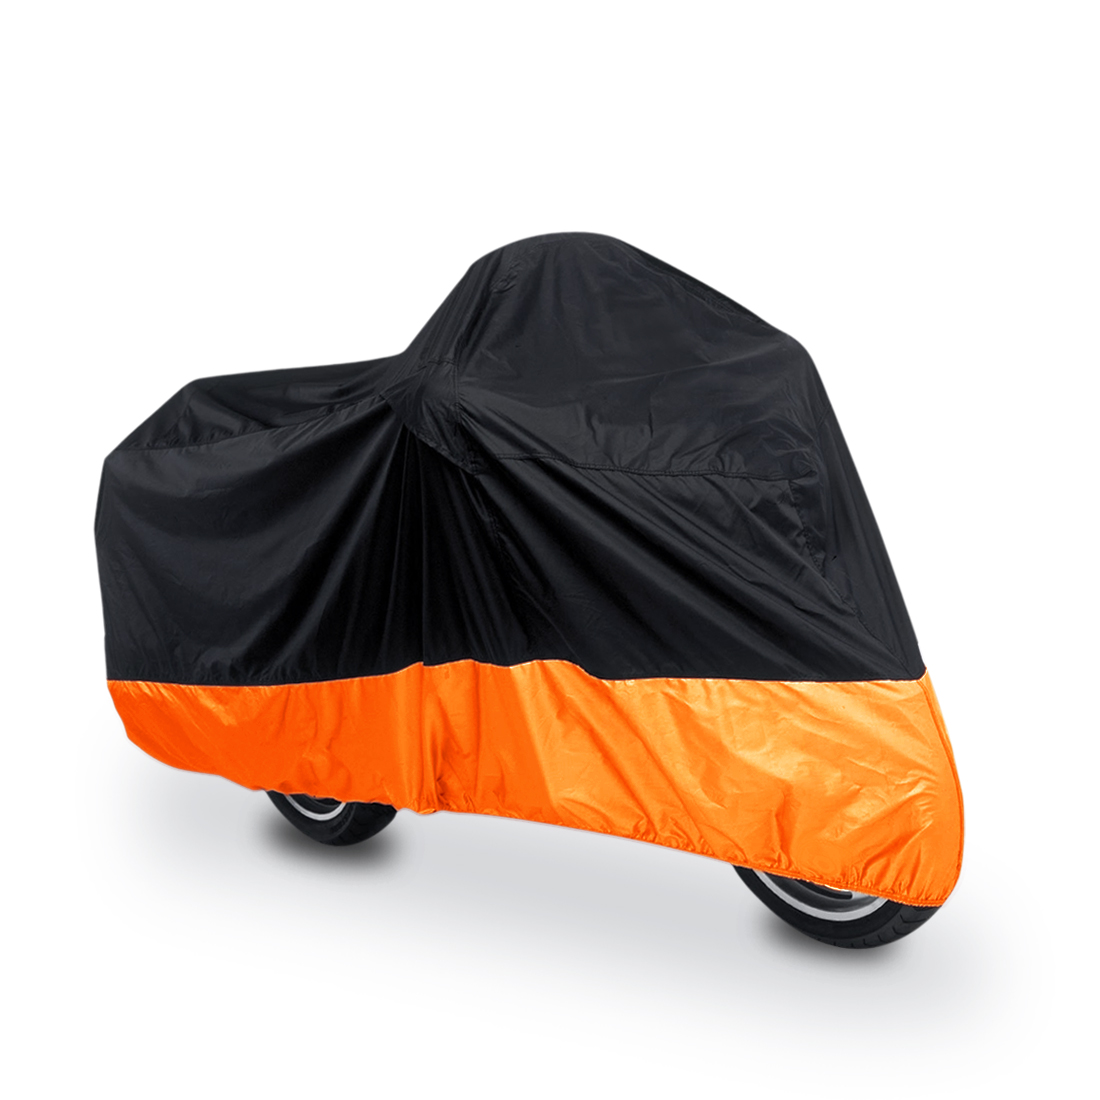 XXXL 180T Orange Motorcycle Cover For Harley Road Glide Ultra FLTRU FLTR Touring